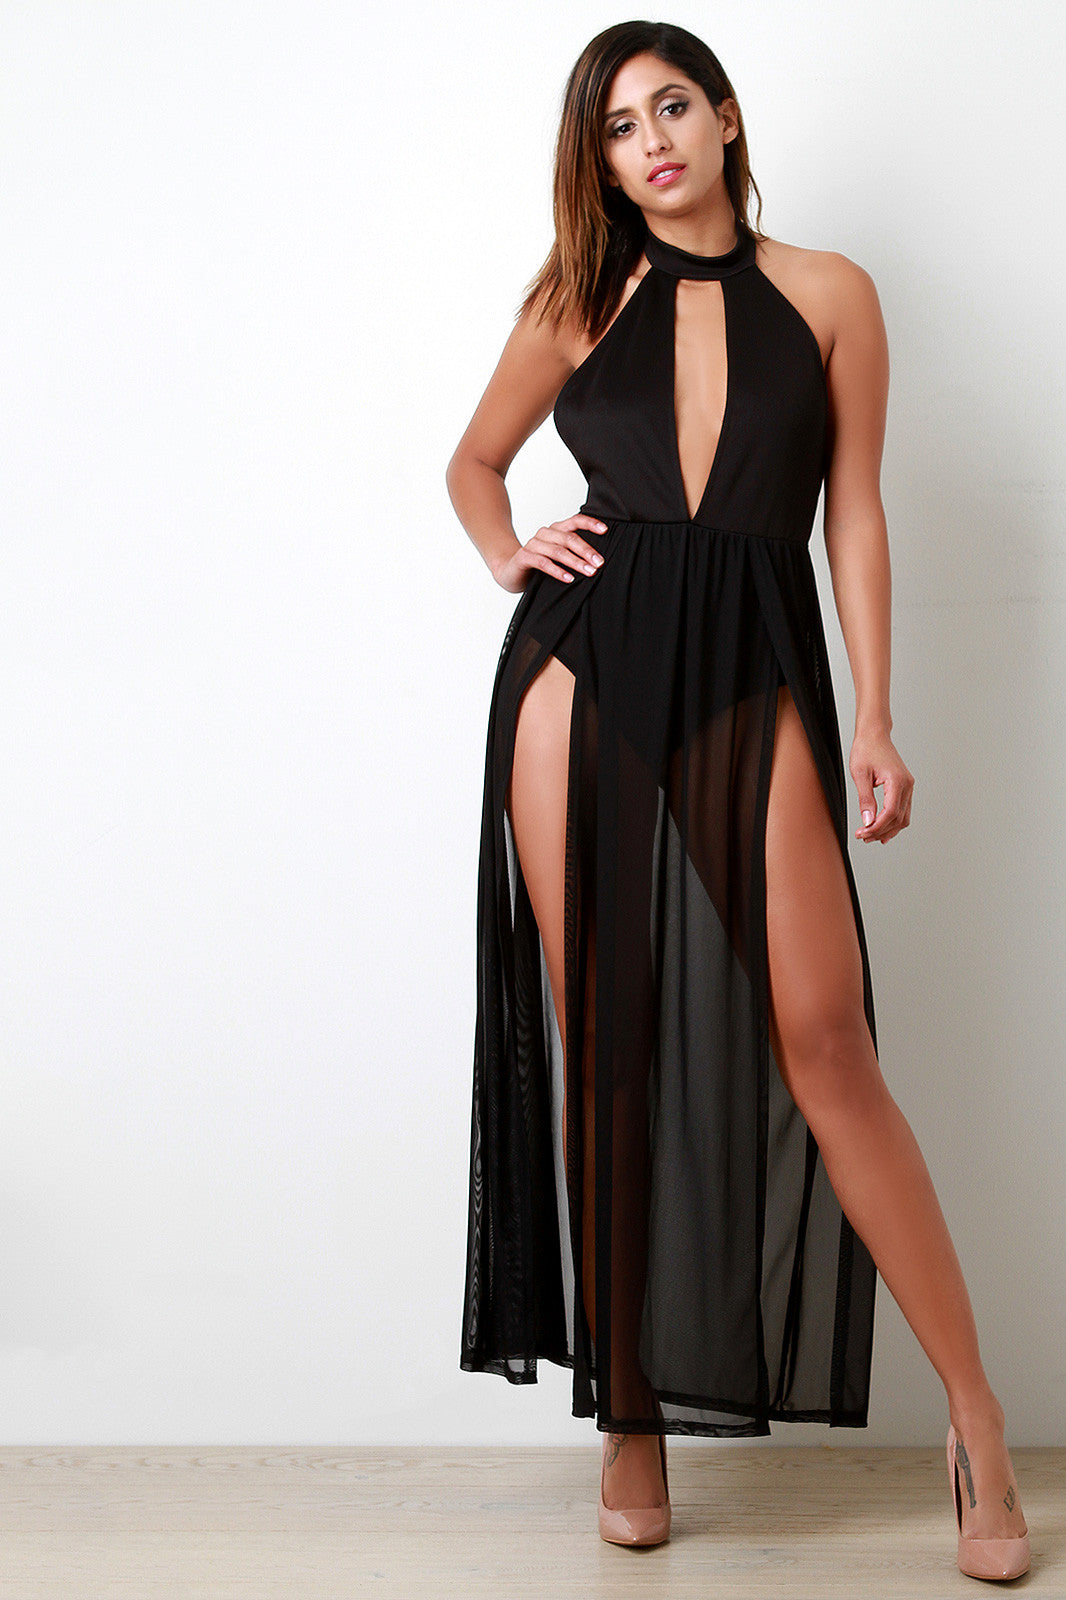 Bare Back Contrast Mesh Maxi Dress - Thick 'N' Curvy Shop - 5